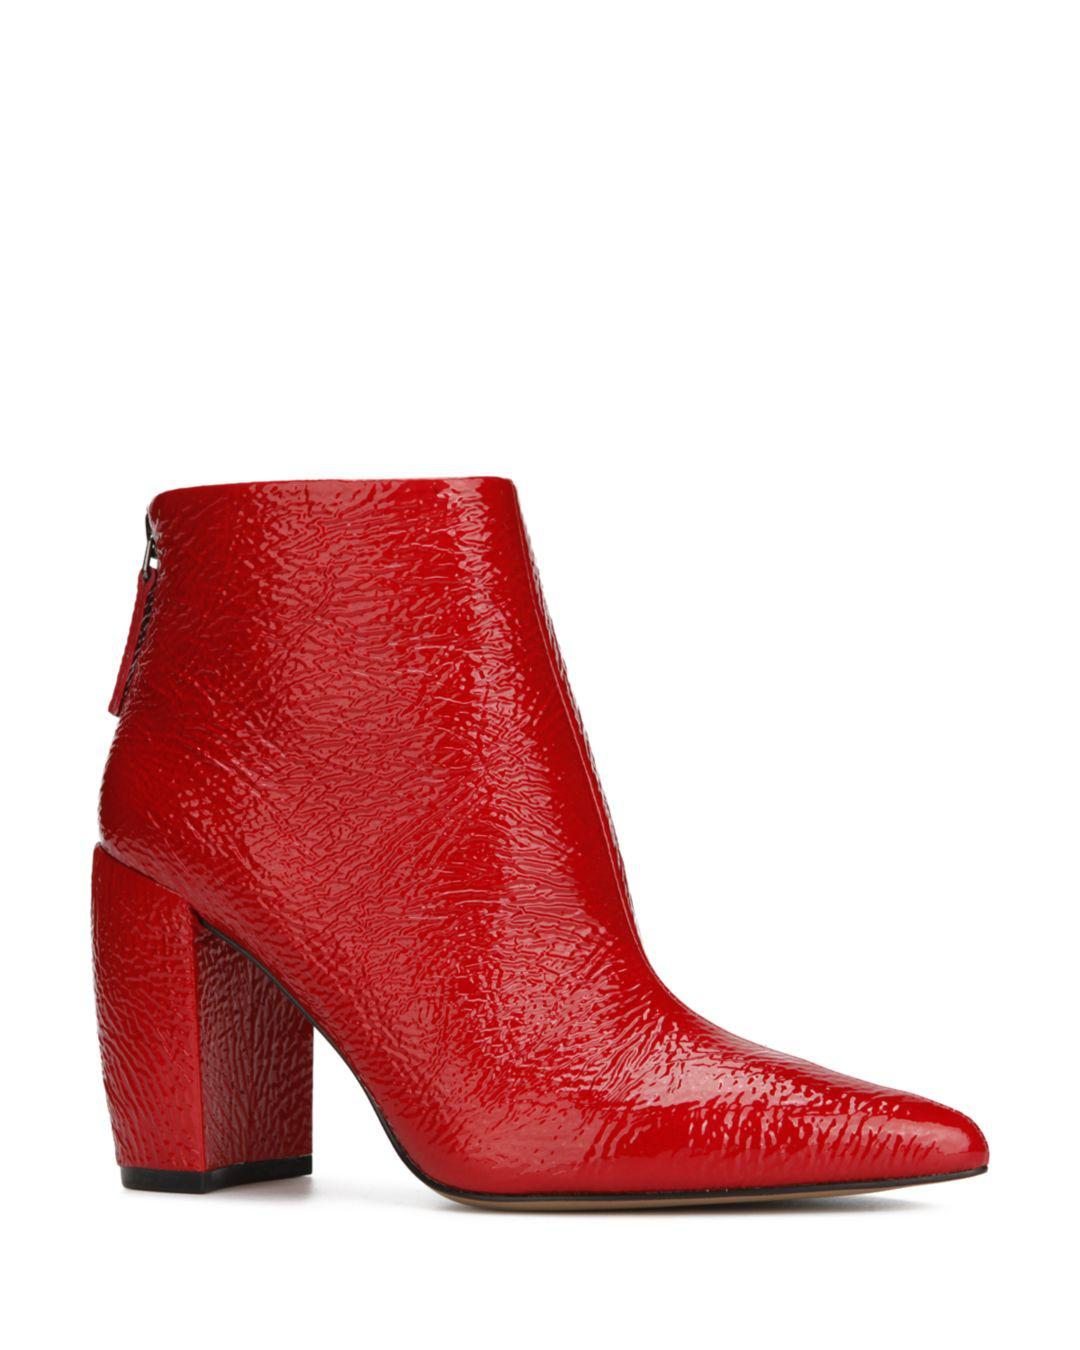 5612aae35da Kenneth Cole Alora Pointy Toe Ankle Bootie Boot in Red - Lyst